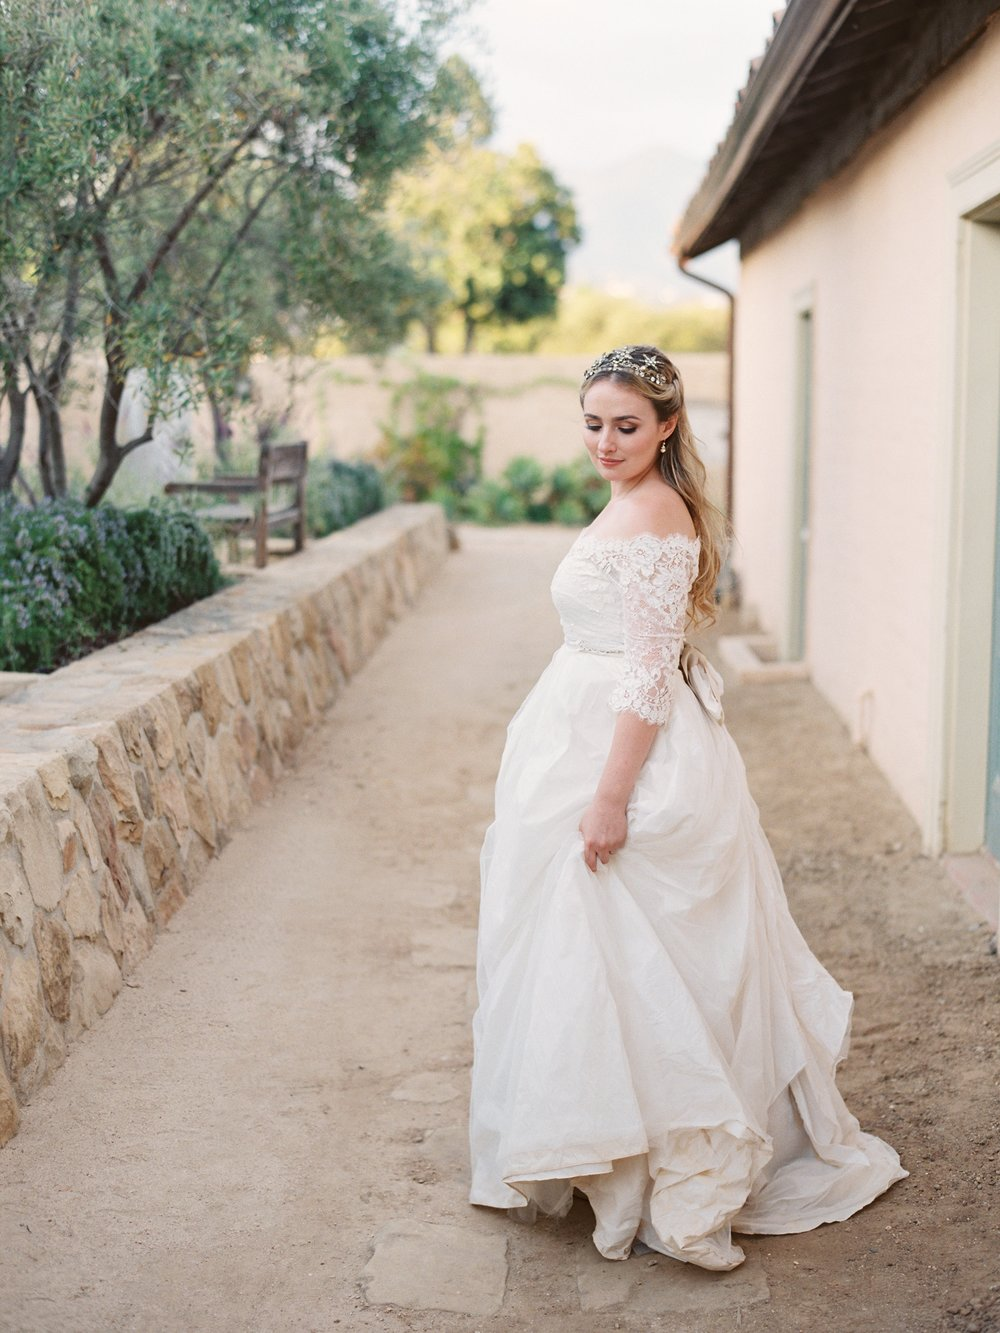 STYLE ME PRETTY : Elegant Santa Barbara Jewish Wedding